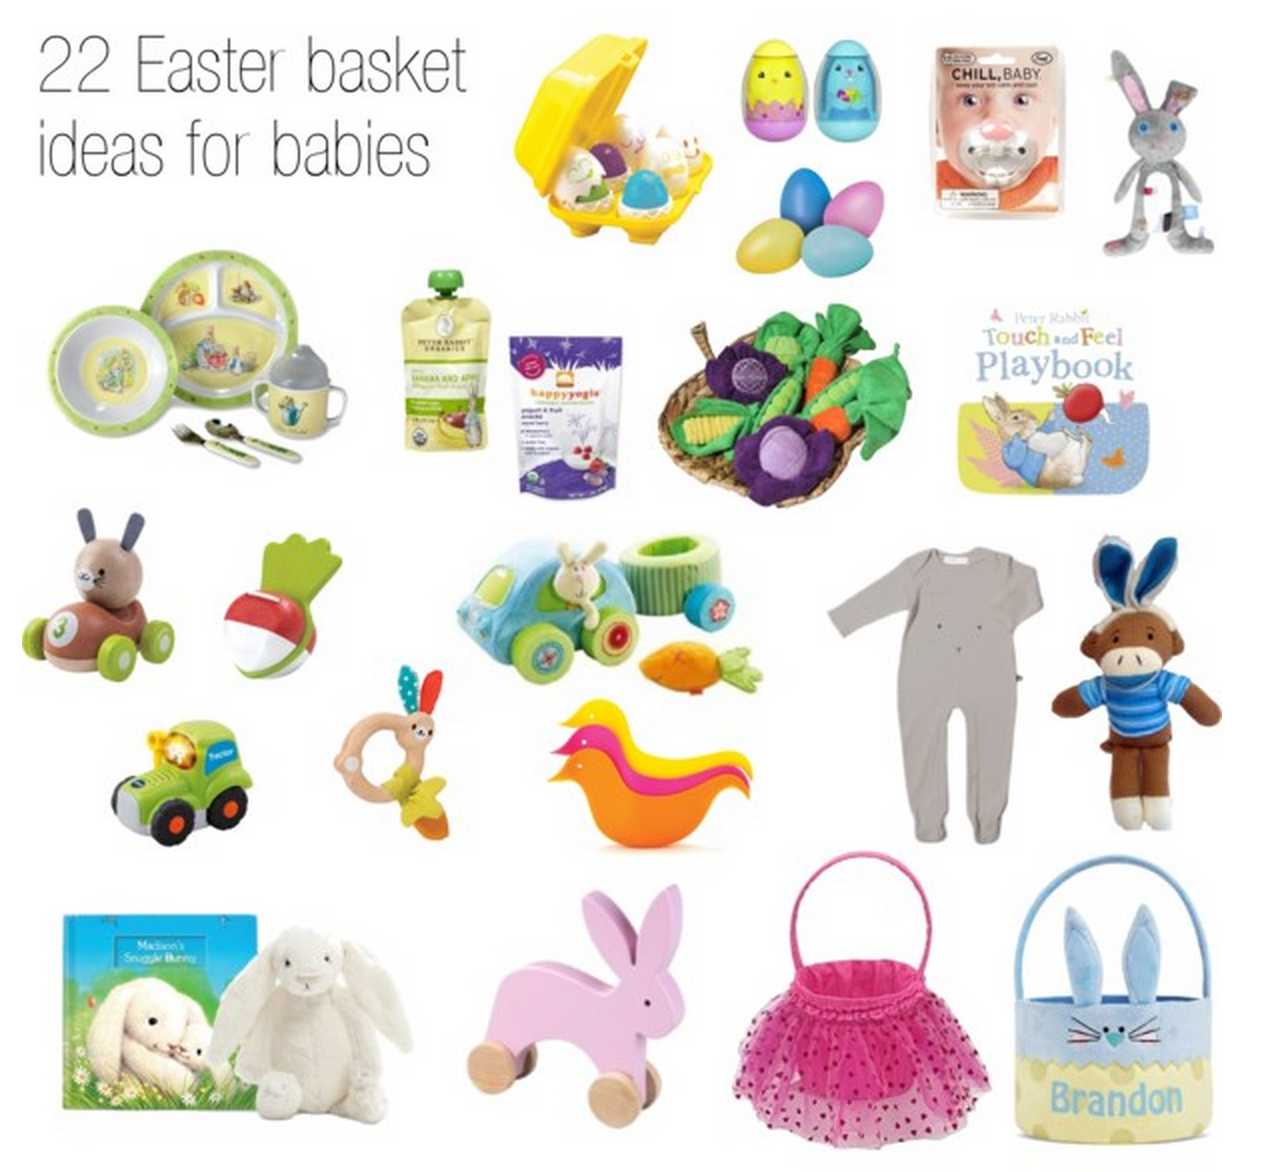 22 Easter basket ideas for babies